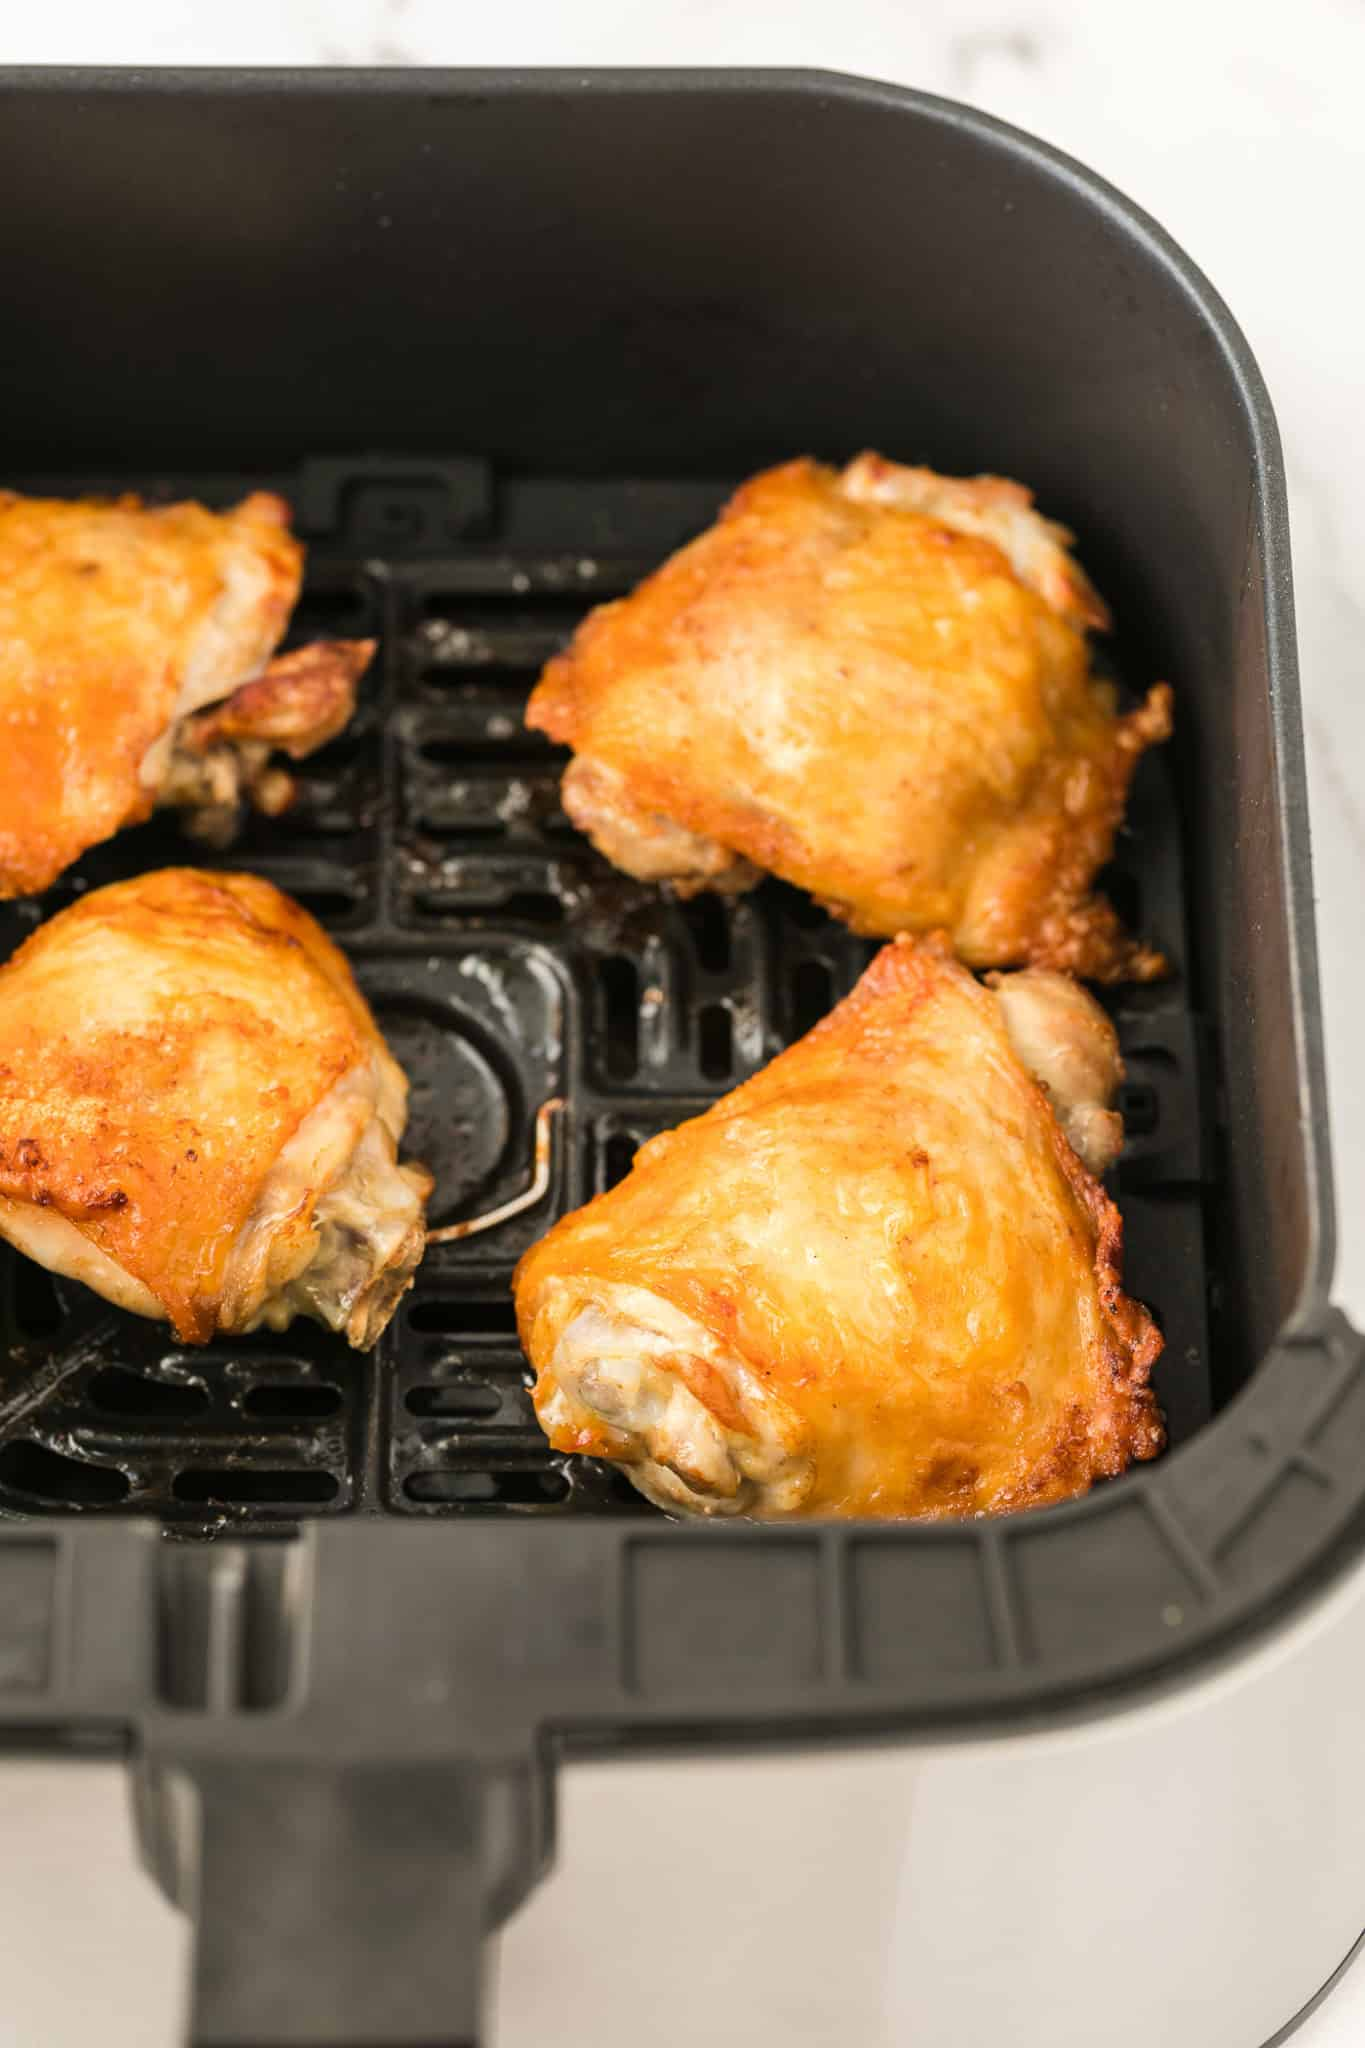 cooked chicken thighs in an air fryer ready to be served